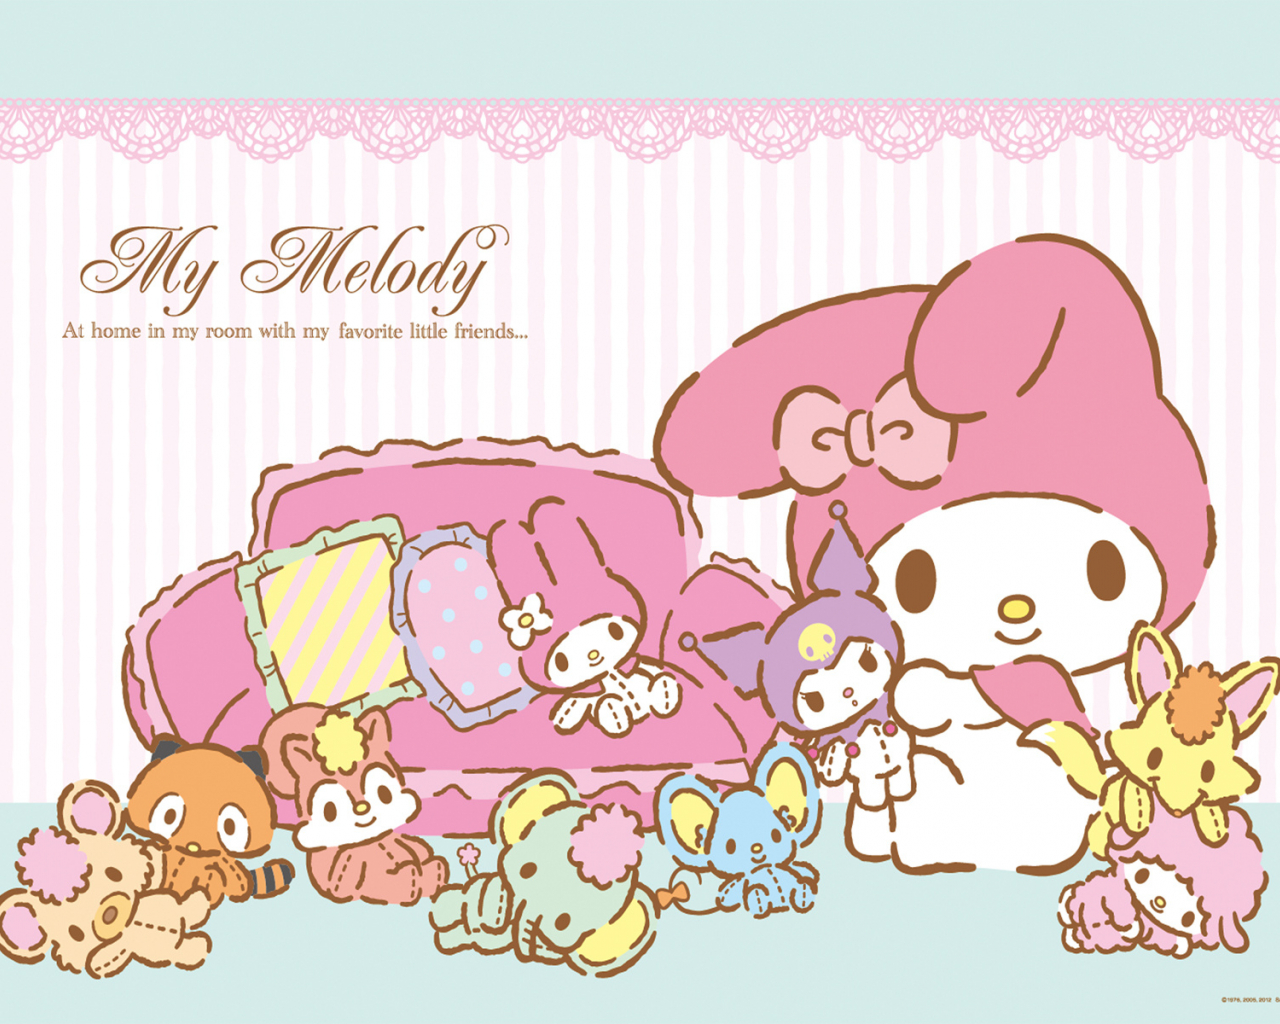 Free Download Iphone5 1600x1200 For Your Desktop Mobile Tablet Explore 50 My Melody Wallpaper For Iphone Kuromi Wallpaper Sanrio Wallpaper Free Download My Melody Wallpaper Lock Screen